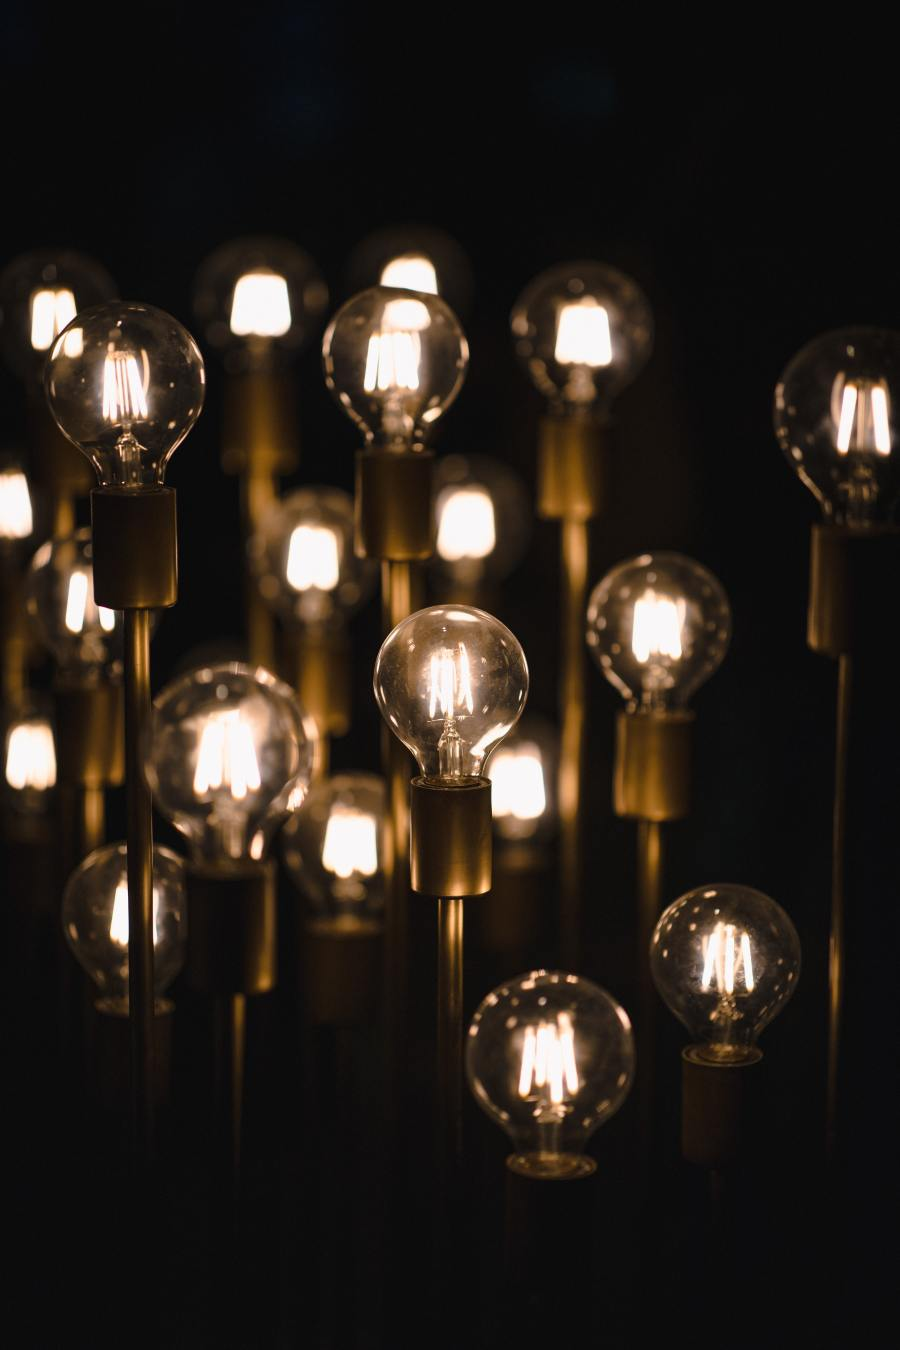 A collection of old fashion filament light bulbs lit up.